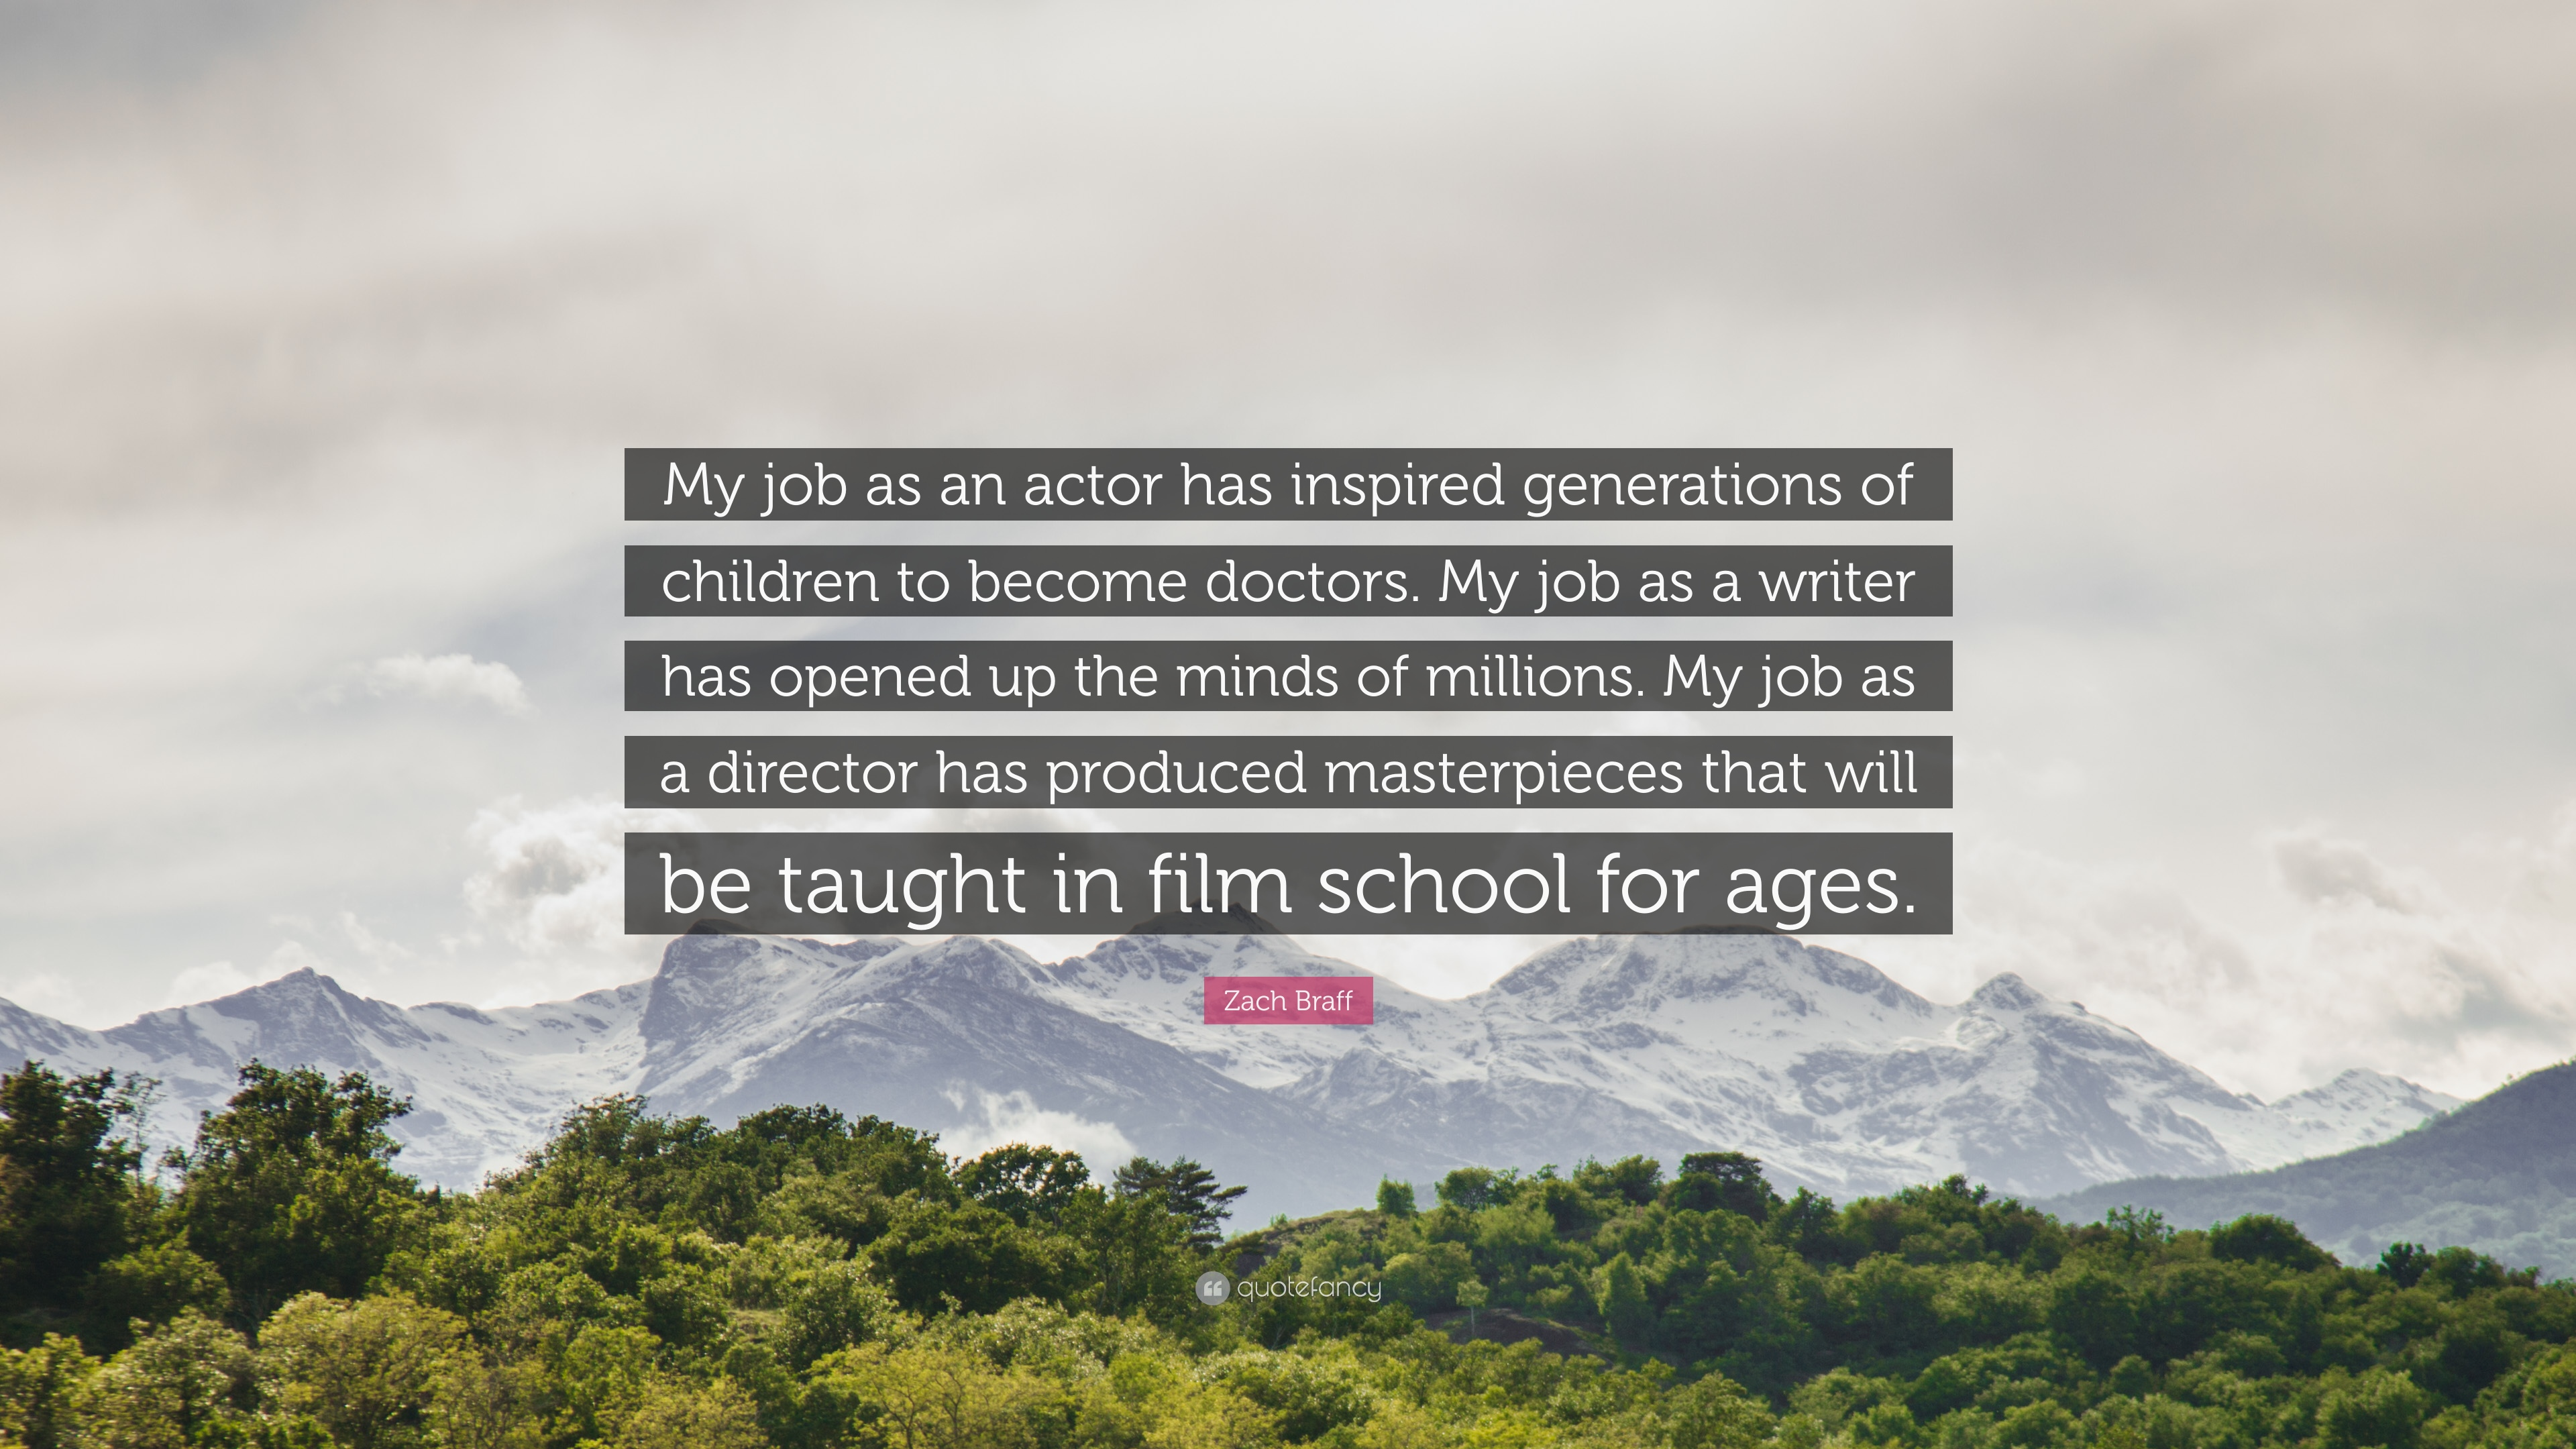 zach braff quote my job as an actor has inspired generations of zach braff quote my job as an actor has inspired generations of children to